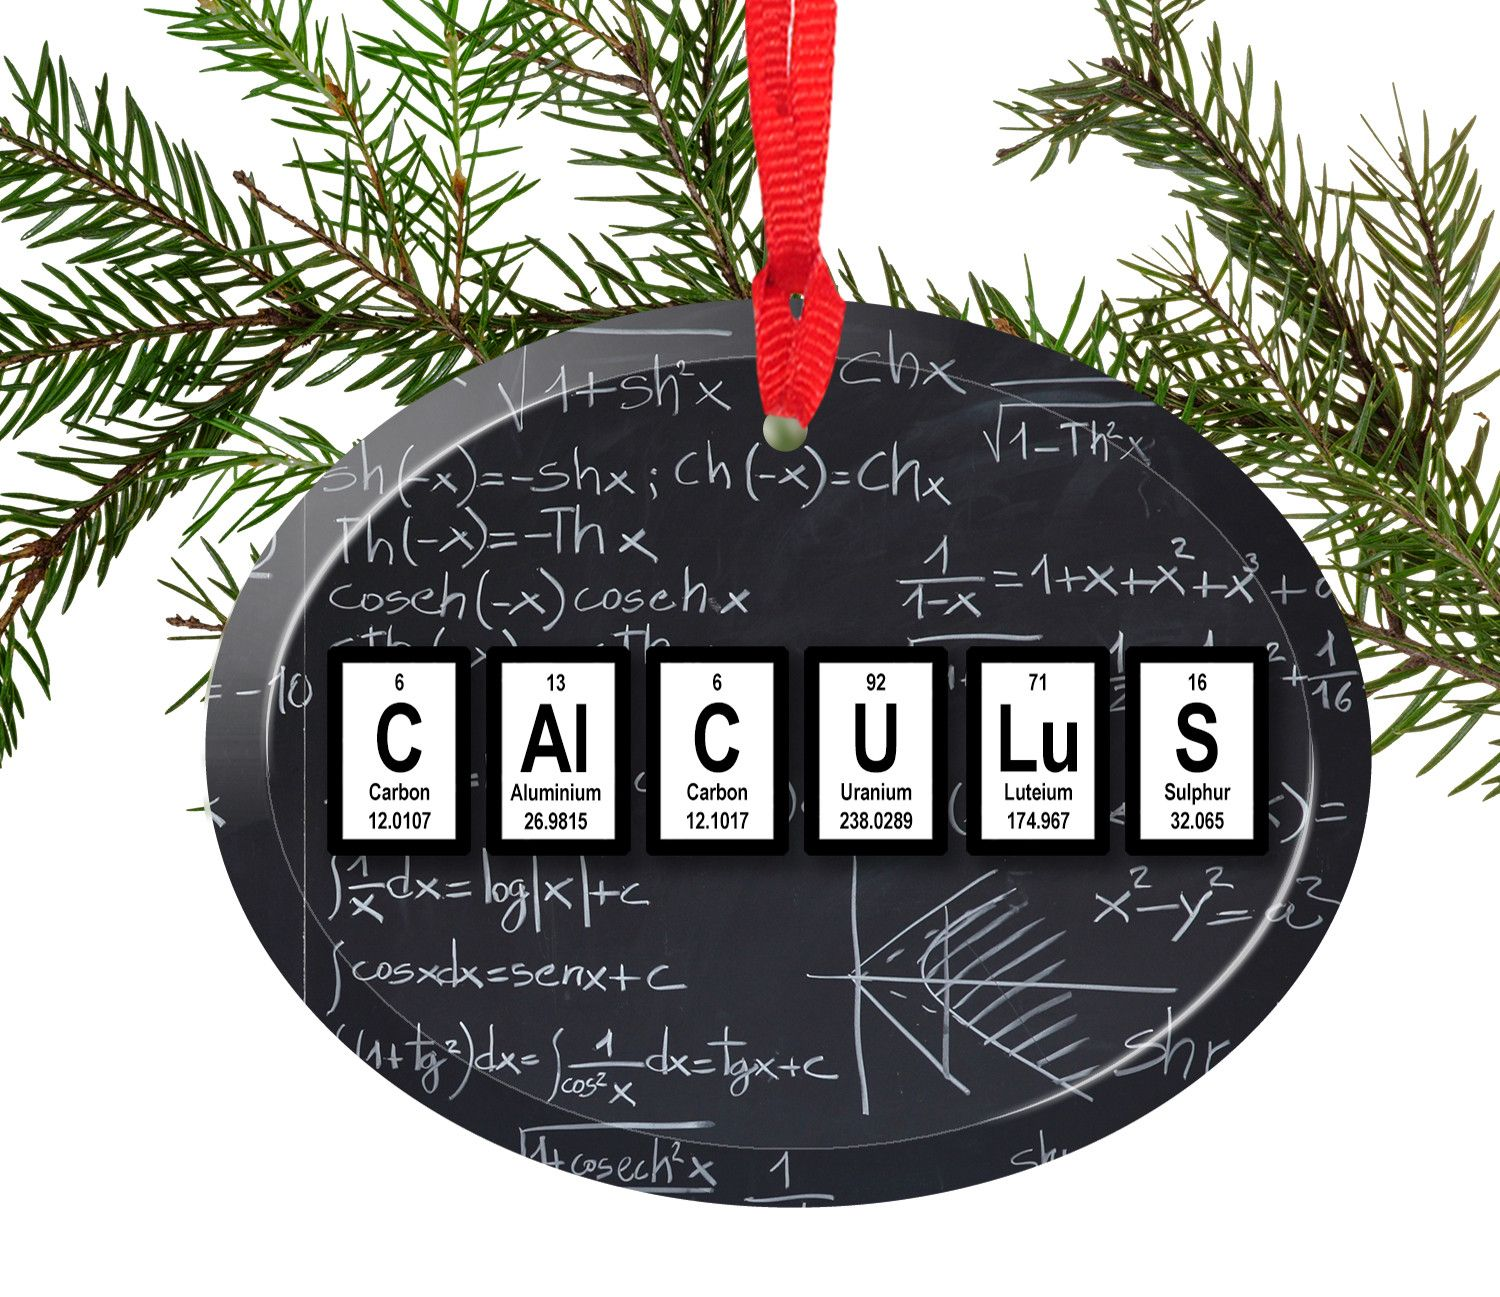 Calculus periodic table of elements glass christmas ornament calculus periodic table of elements glass christmas ornament urtaz Choice Image